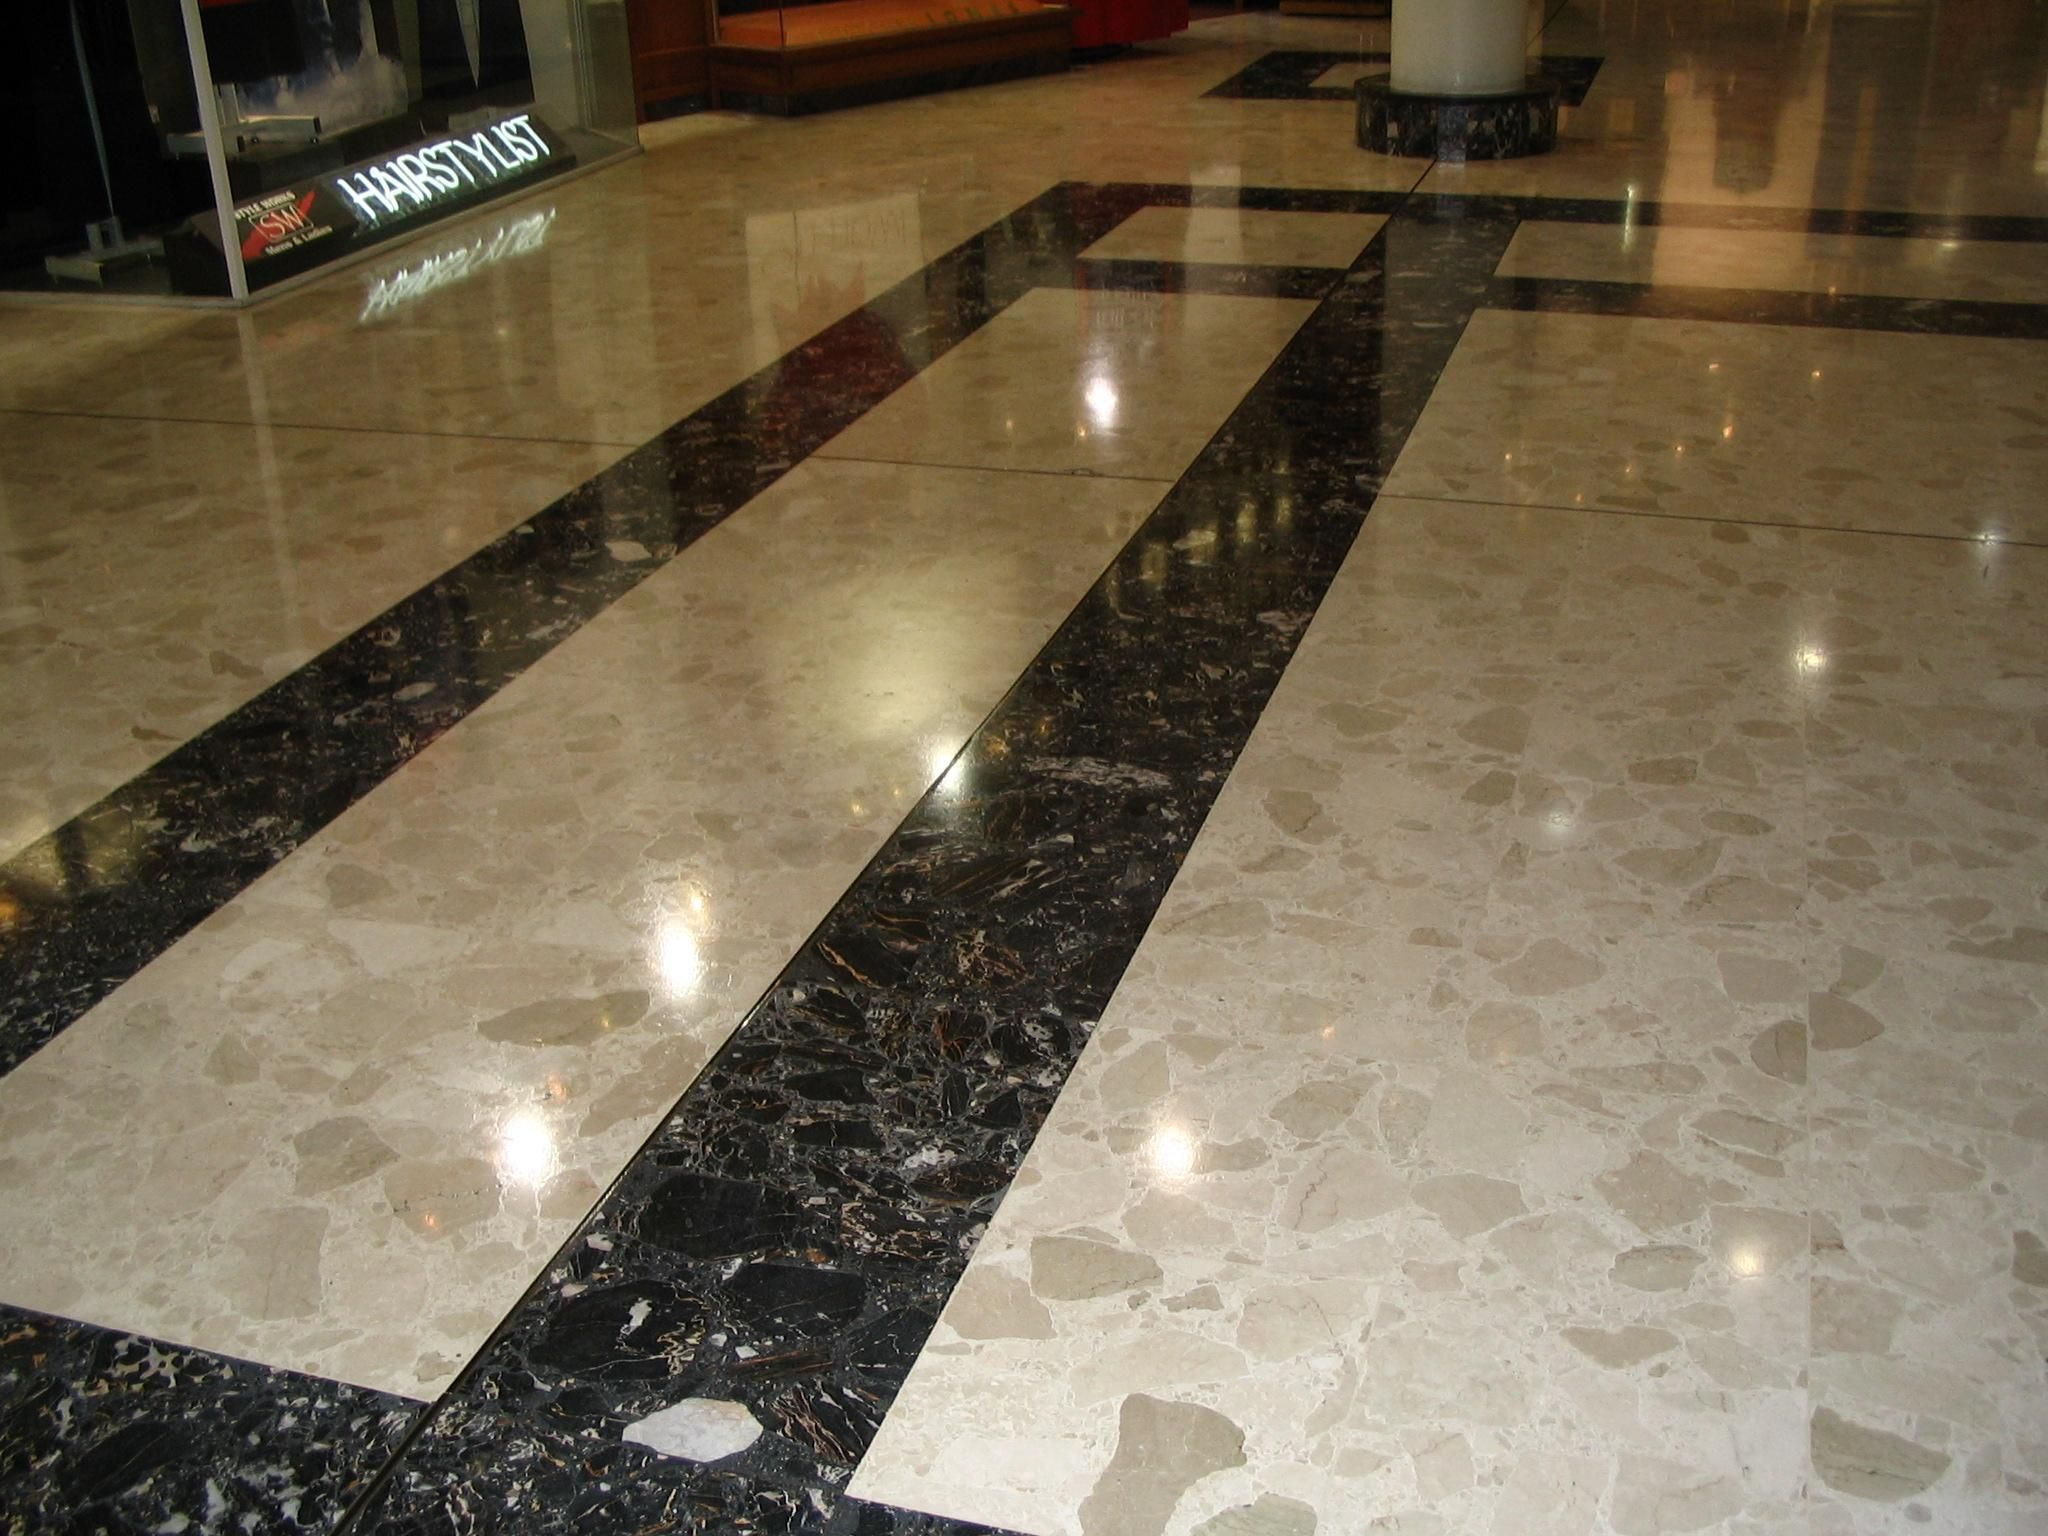 Flooring Marble Floor Design Http Remoldingyourhome Org Is A Outlet Store It Has Great Ideas For Home Improvemen Vinyl Flooring Kitchen Flooring Marble Floor